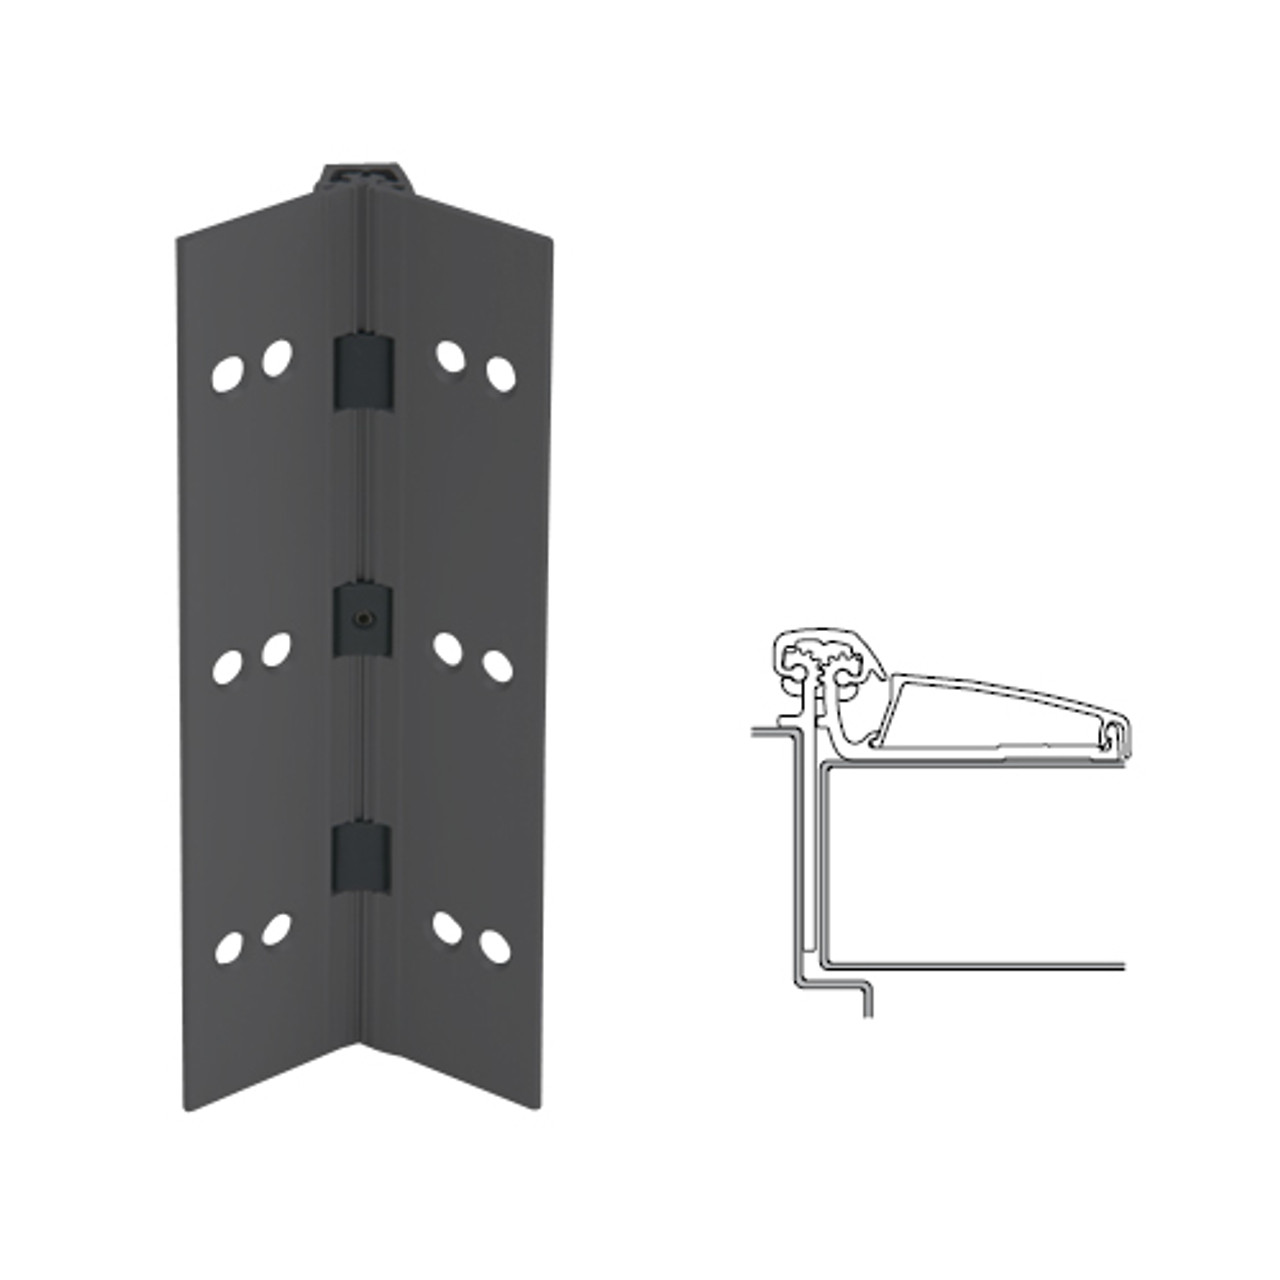 046XY-315AN-83-SECHM IVES Adjustable Half Surface Continuous Geared Hinges with Security Screws - Hex Pin Drive in Anodized Black